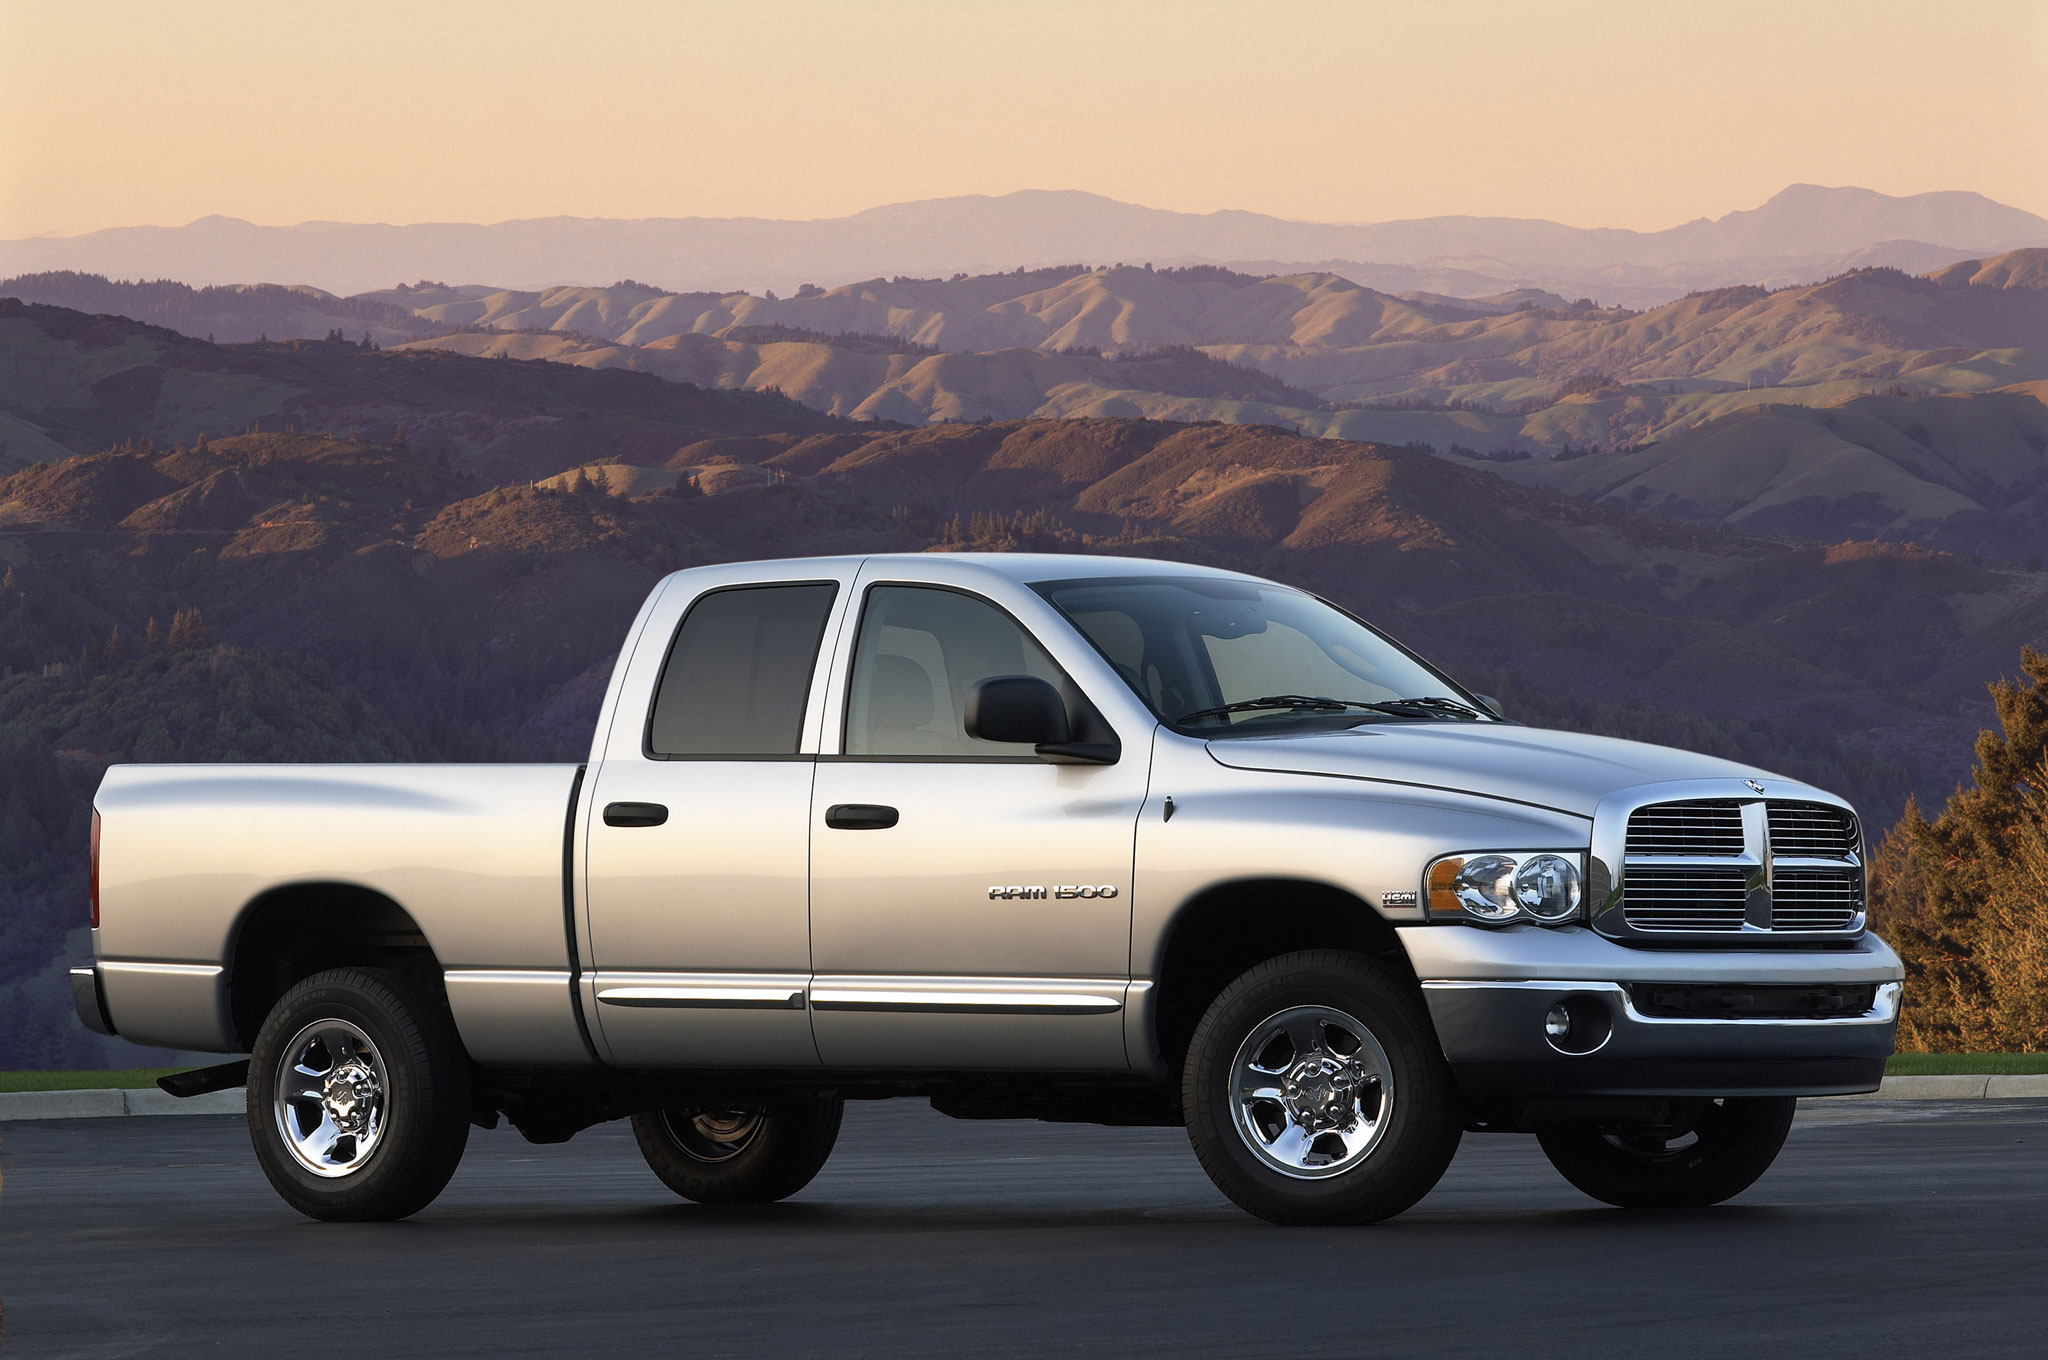 Slow 2008 Ram sales threaten Dodge dealers 09 model launch